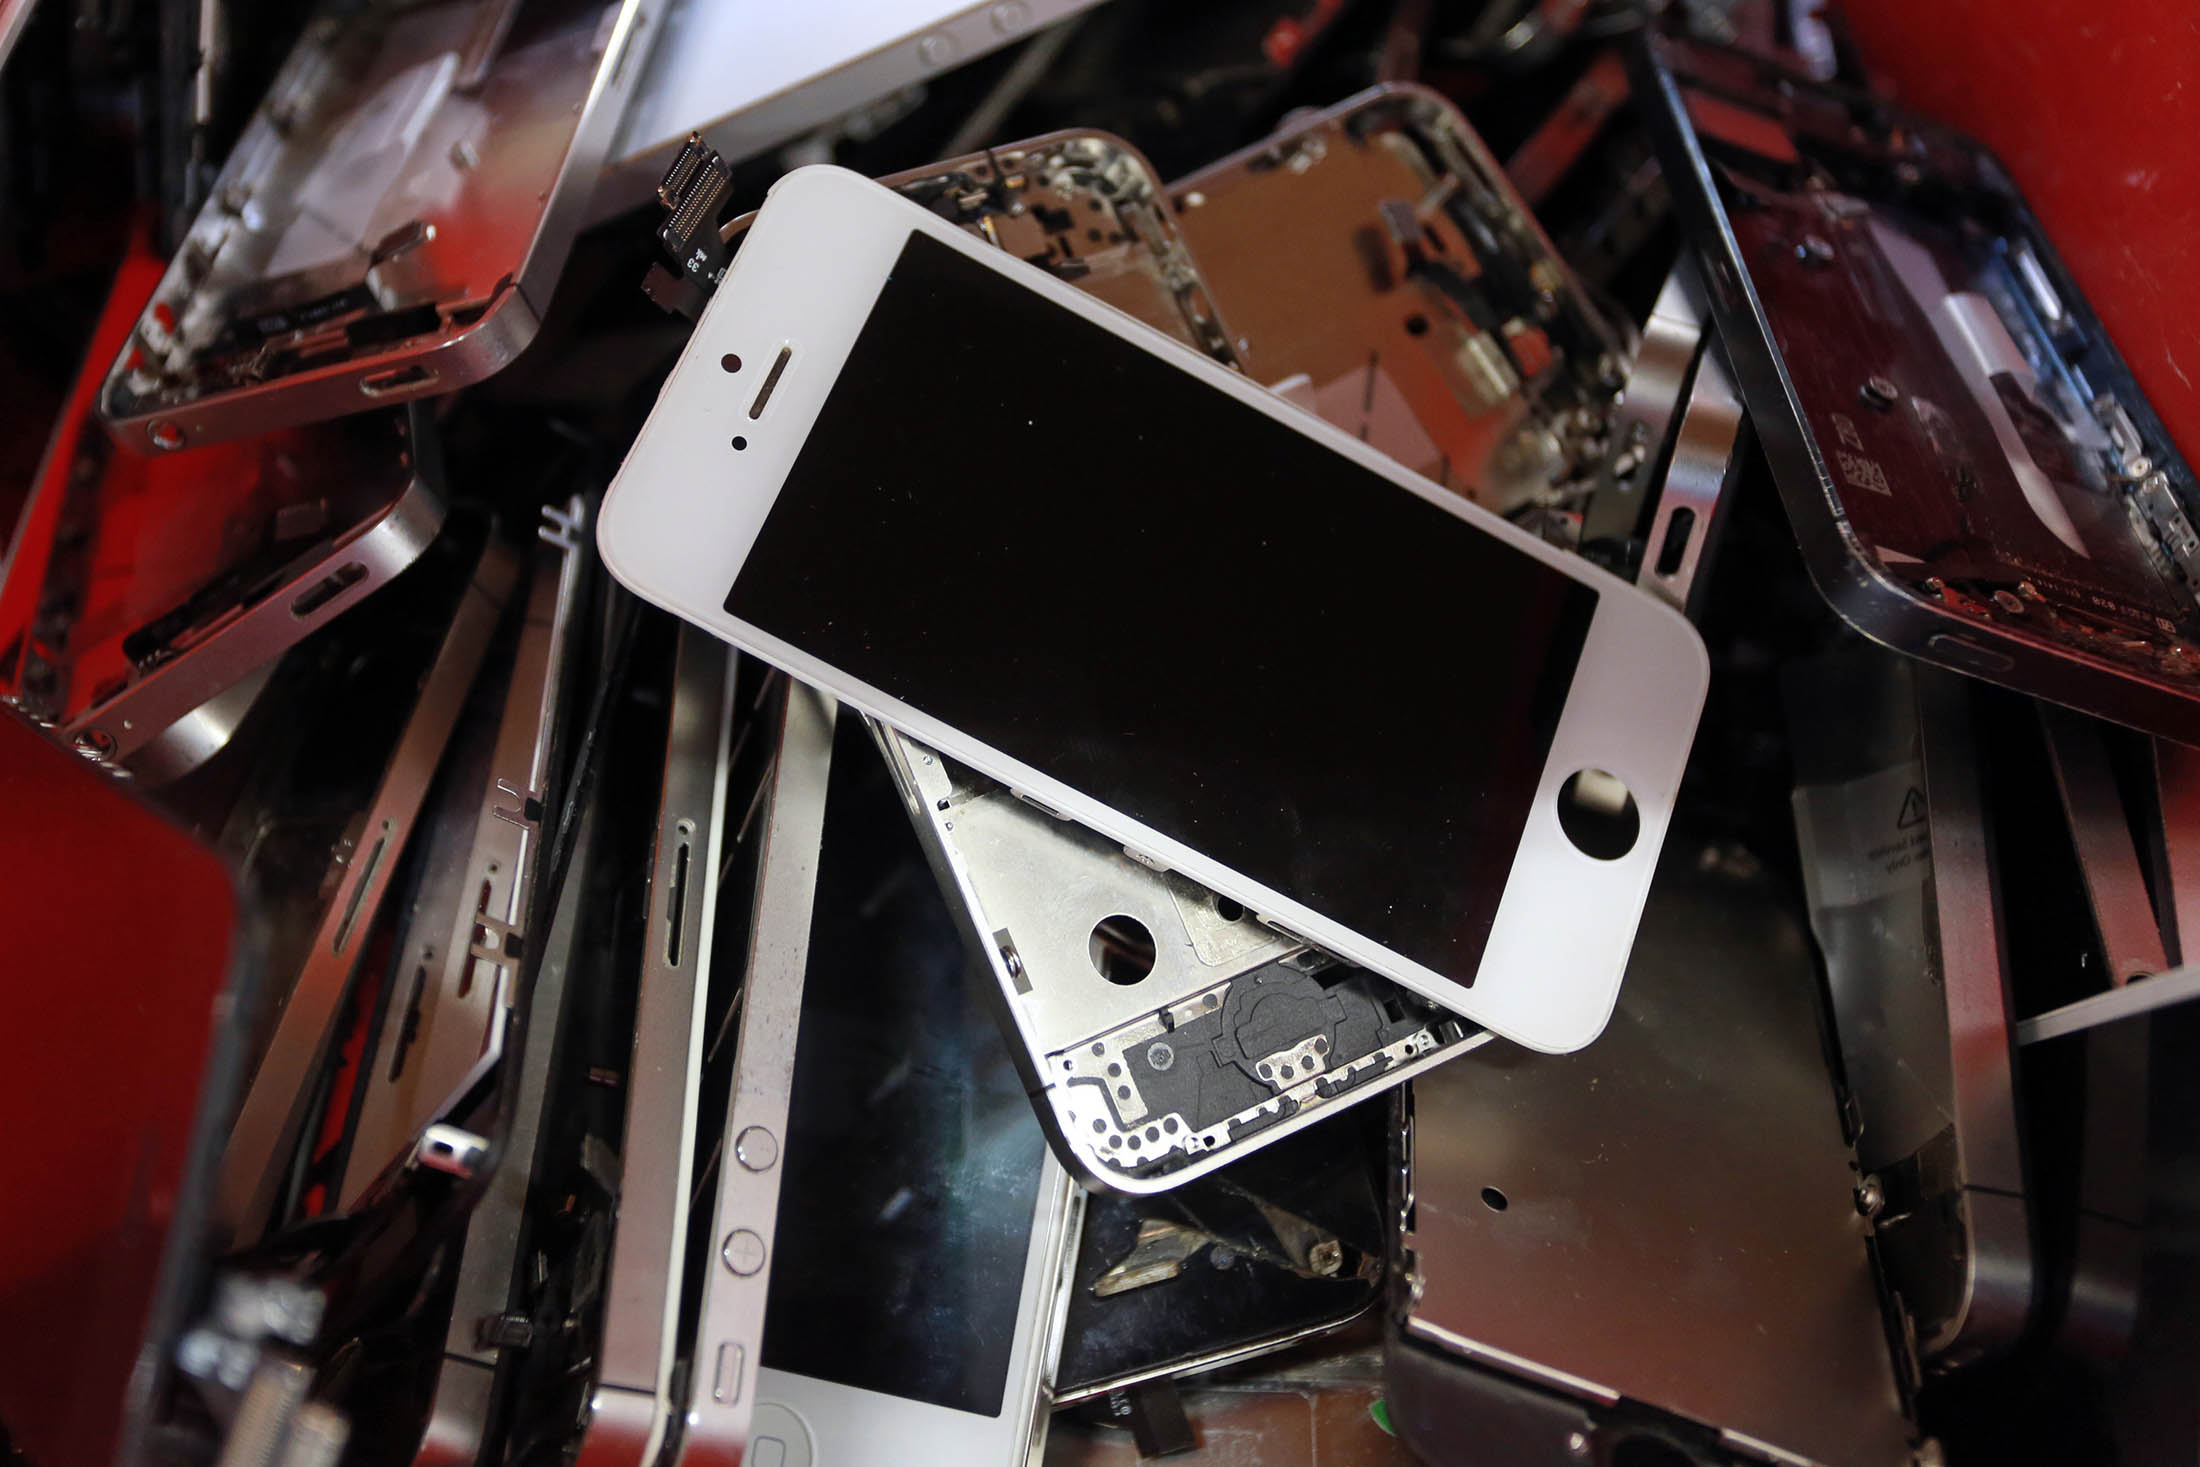 At the end of their useful lives, many iPhones face the crusher.